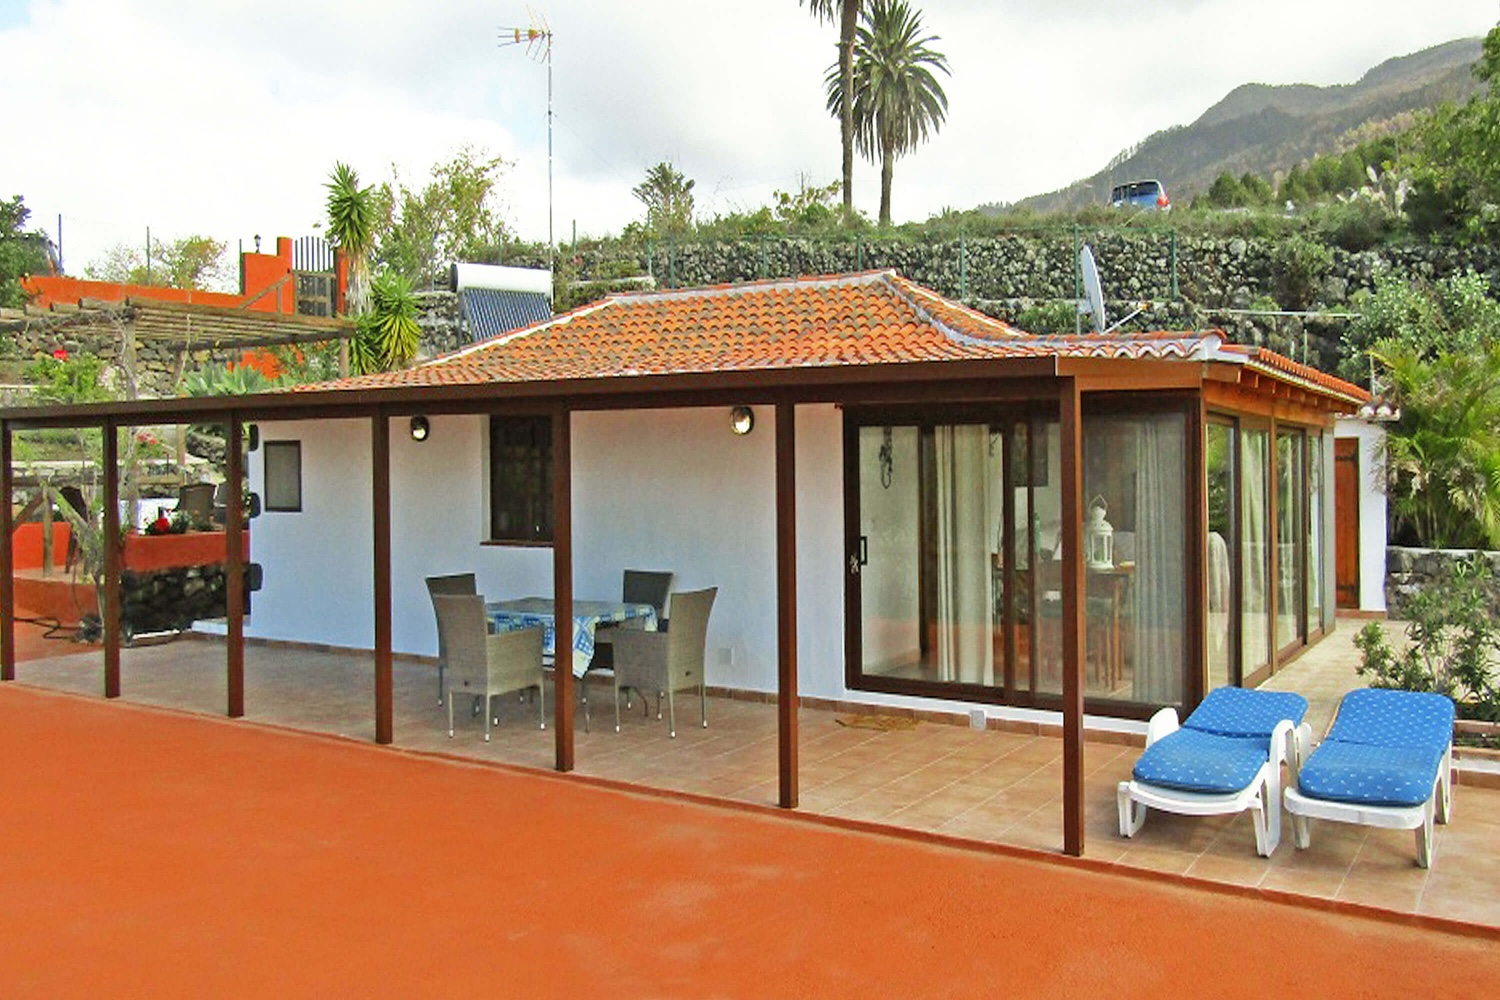 Comfortable holiday home with two bedrooms and views of the sea and the mountains from the large terrace only a few kilometers from the Cumbre Vieja Natural Park